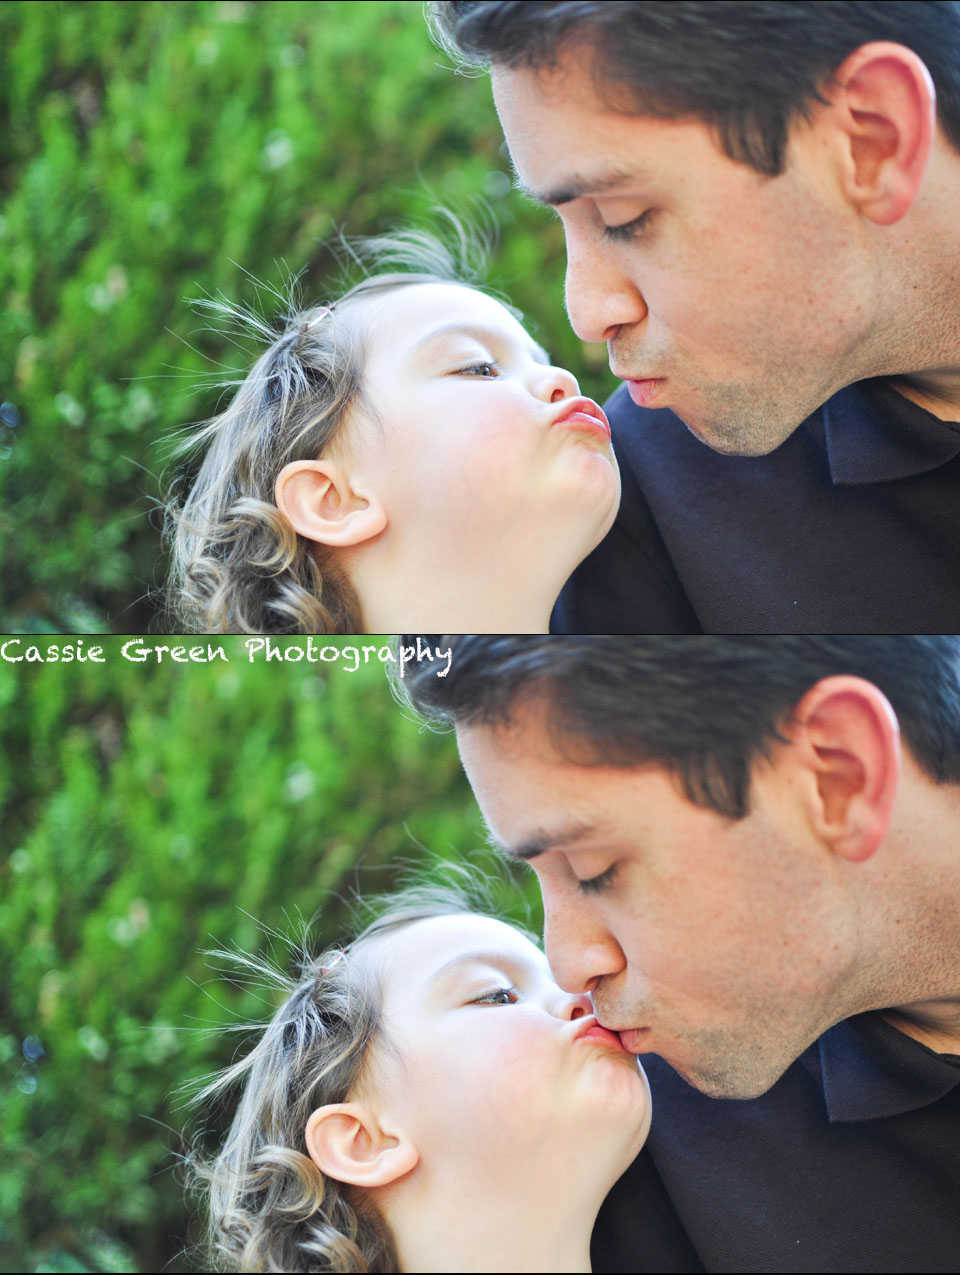 Cassie Green Photography: A little girl to love and now a